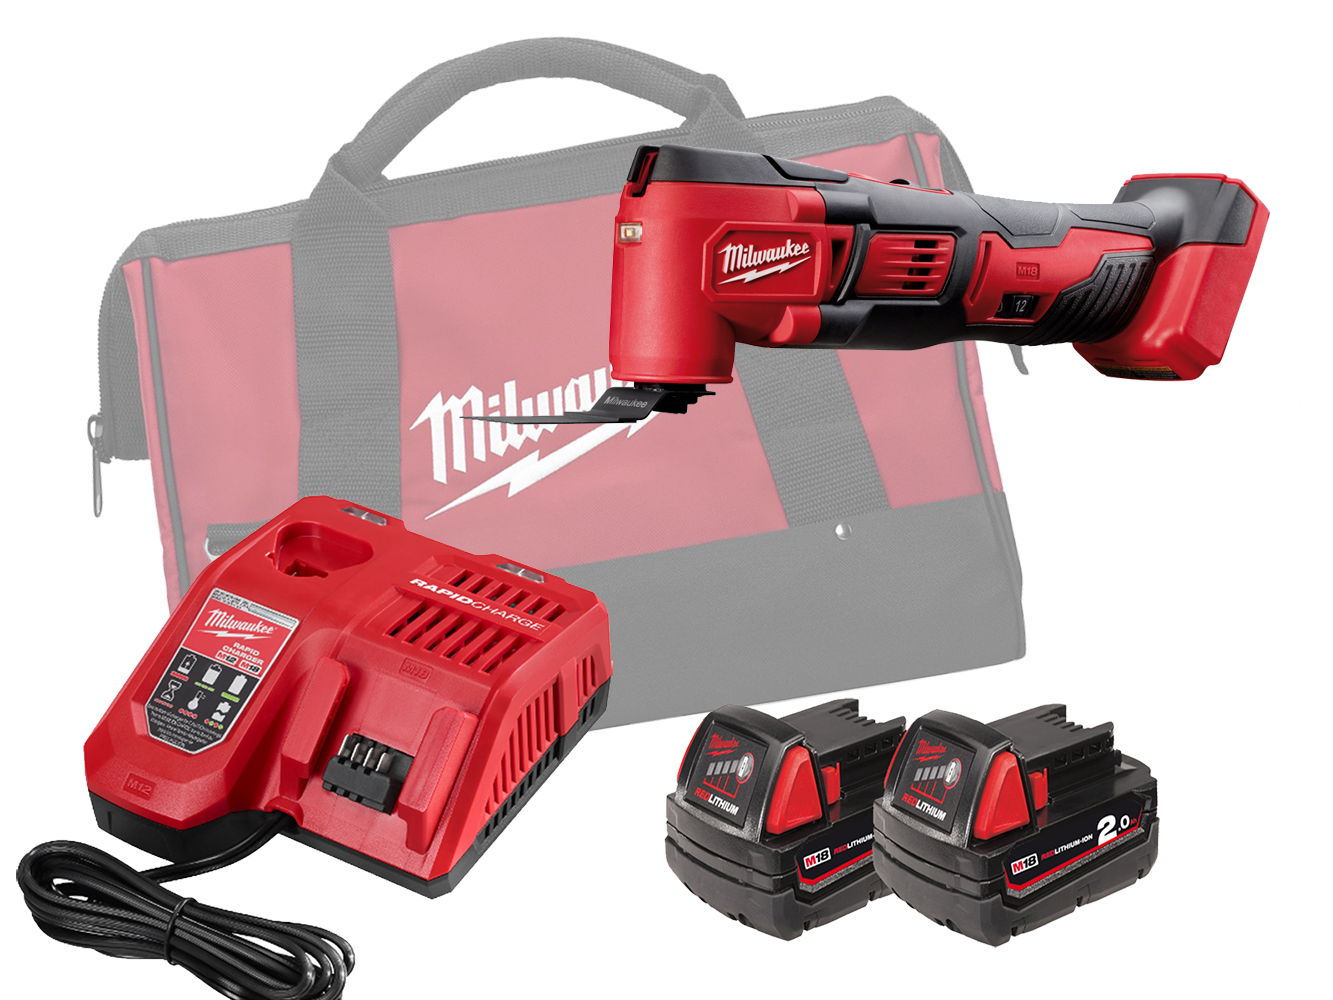 MILWAUKEE 18V BRUSHED QUICK-RELEASE MULTI TOOL - M18BMT - 2.0AH PACK